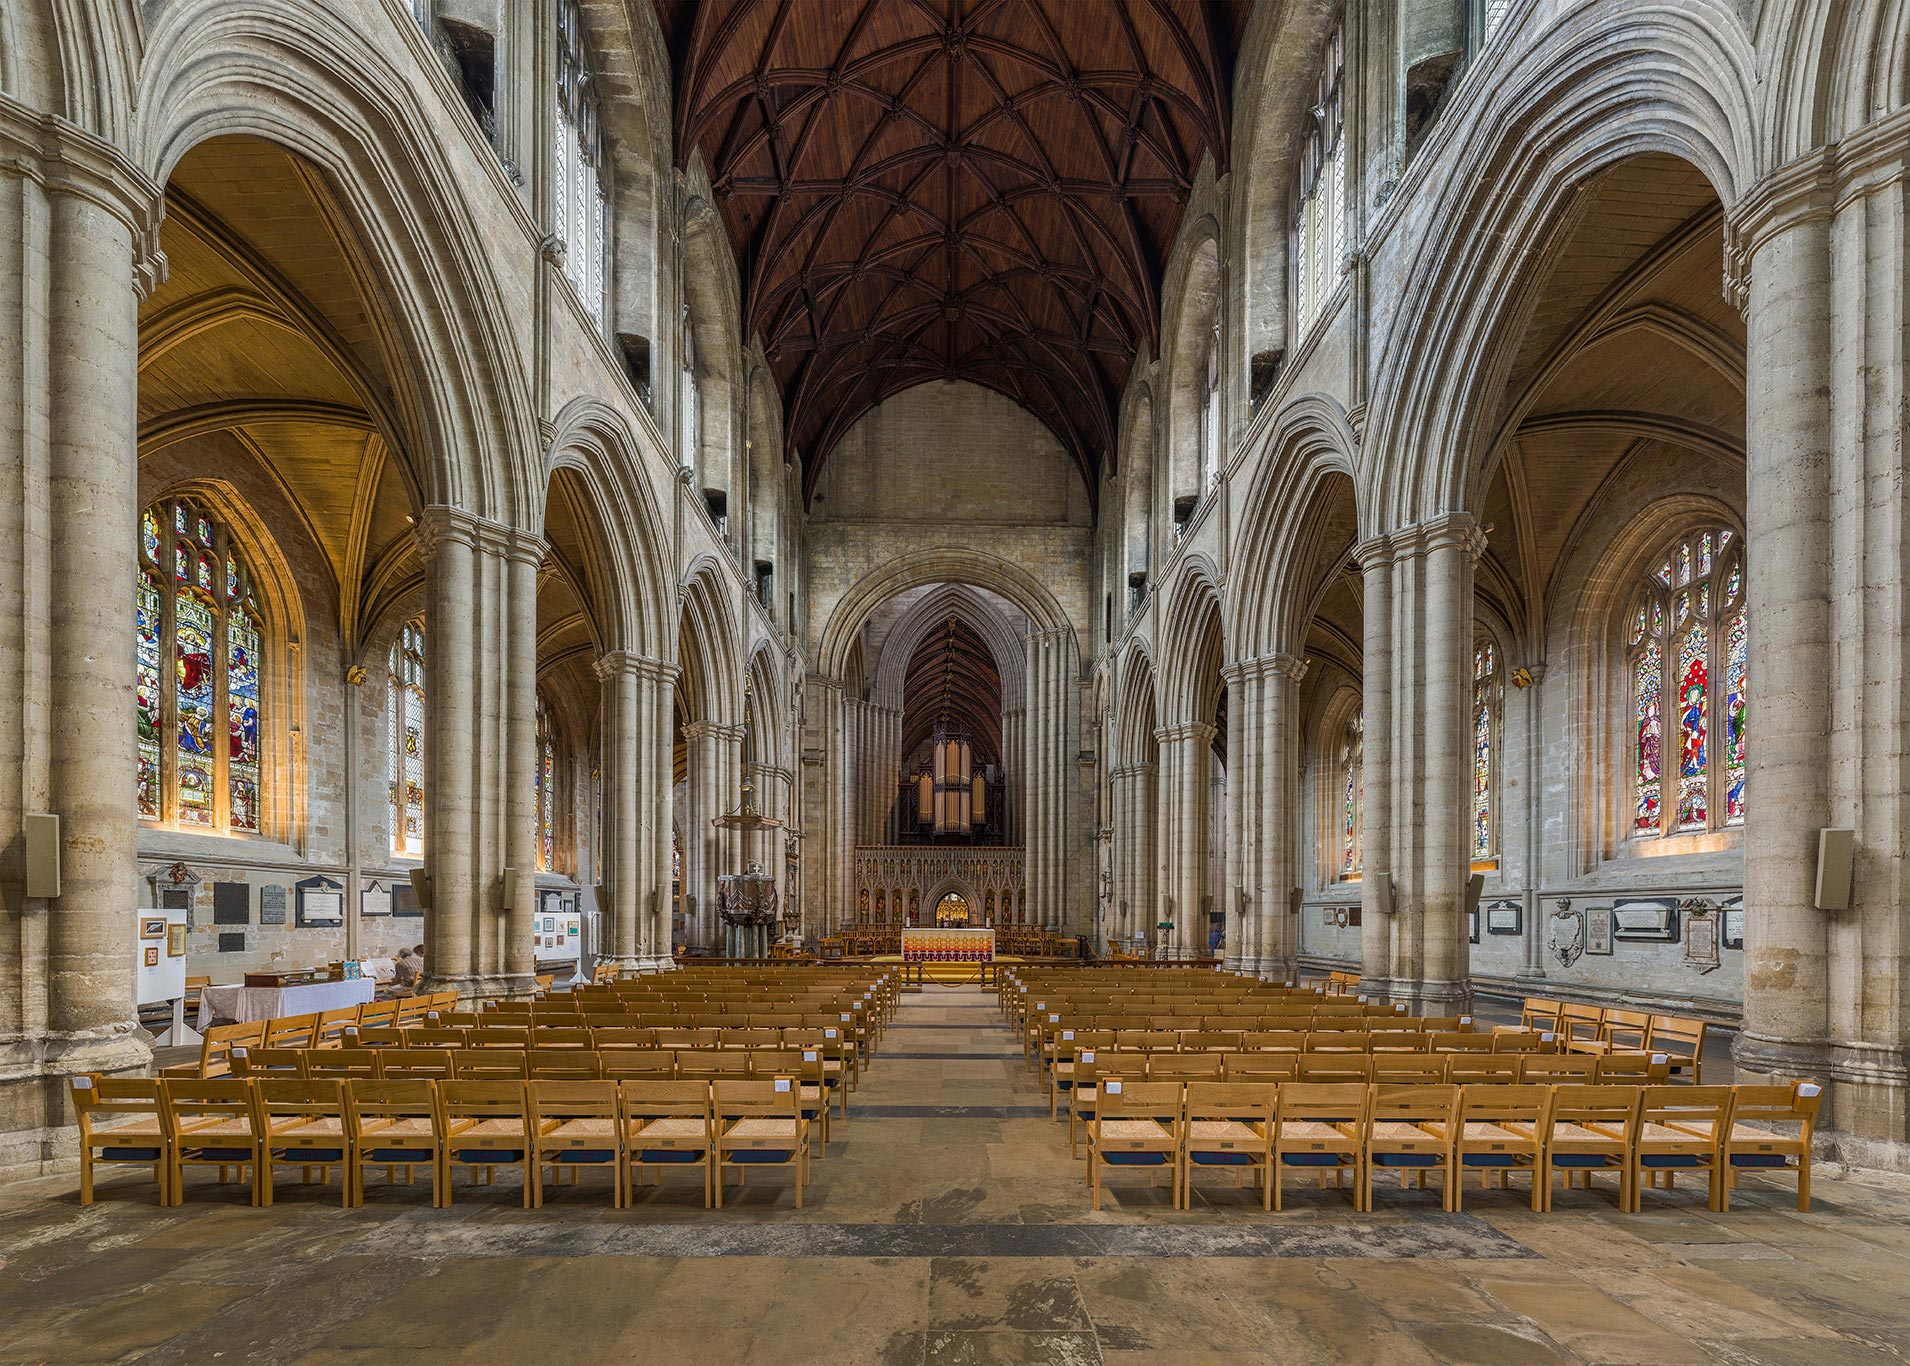 The nave of Ripon Cathedral looking east from the entrance in North Yorkshire, England